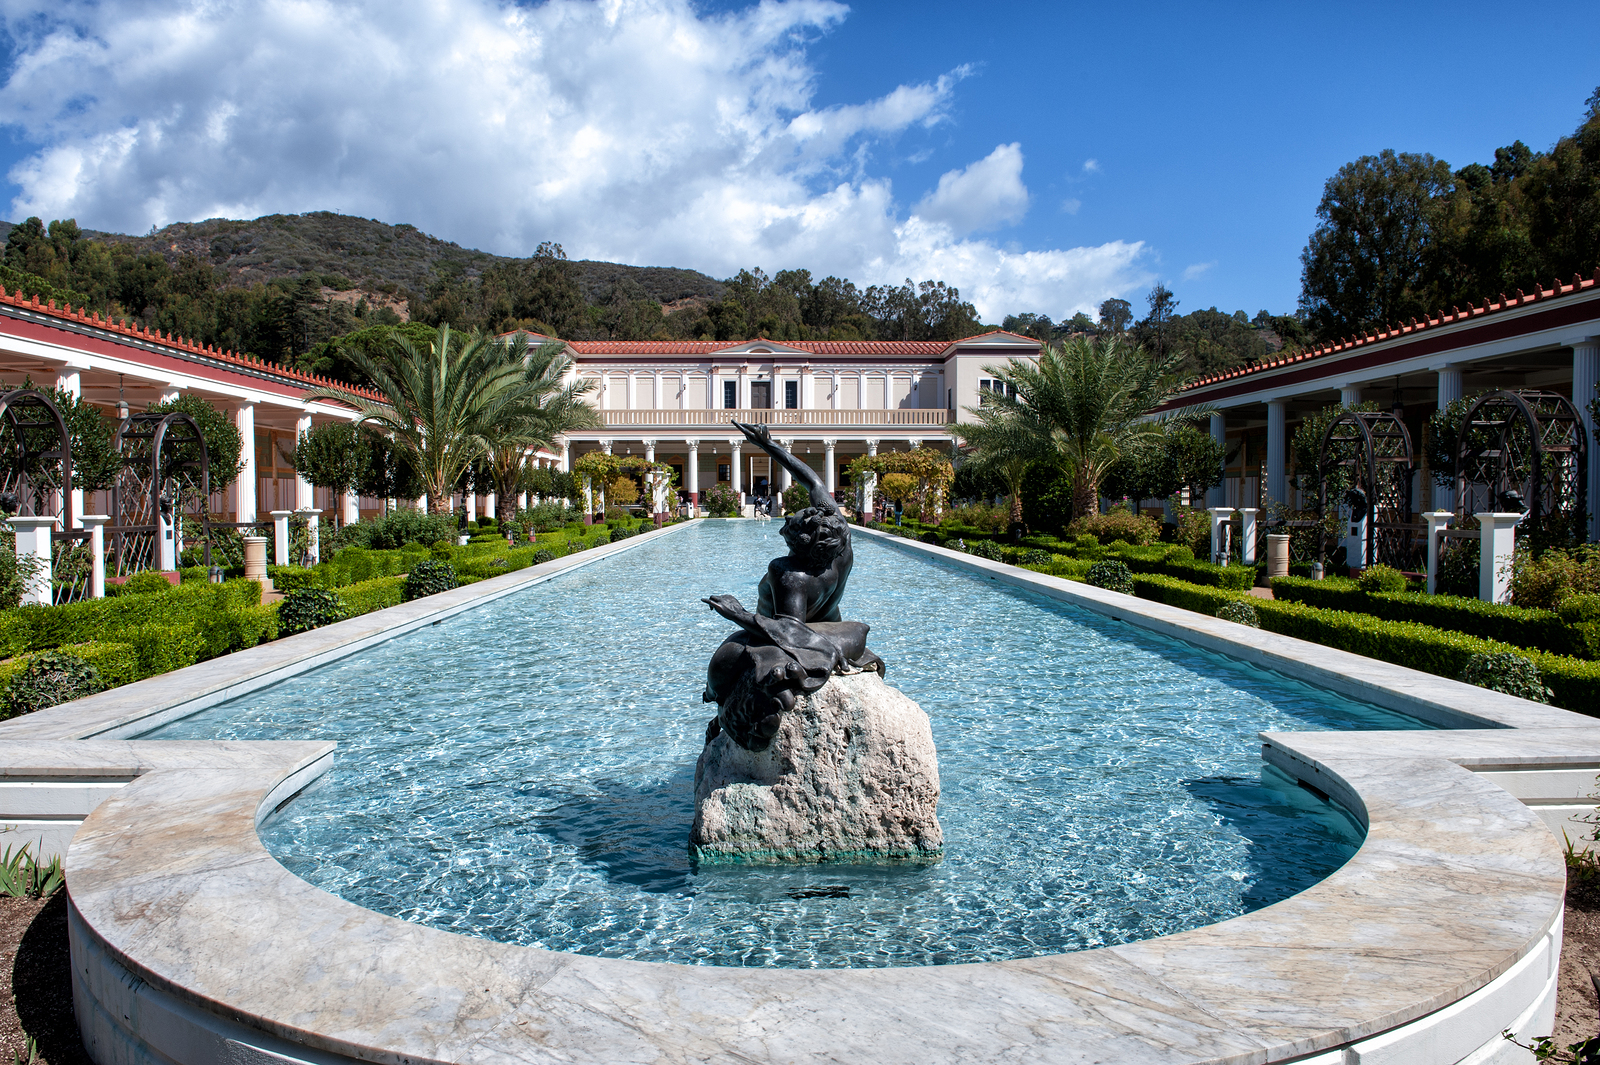 Visit the Getty Villa near Pacific Palisades homes.